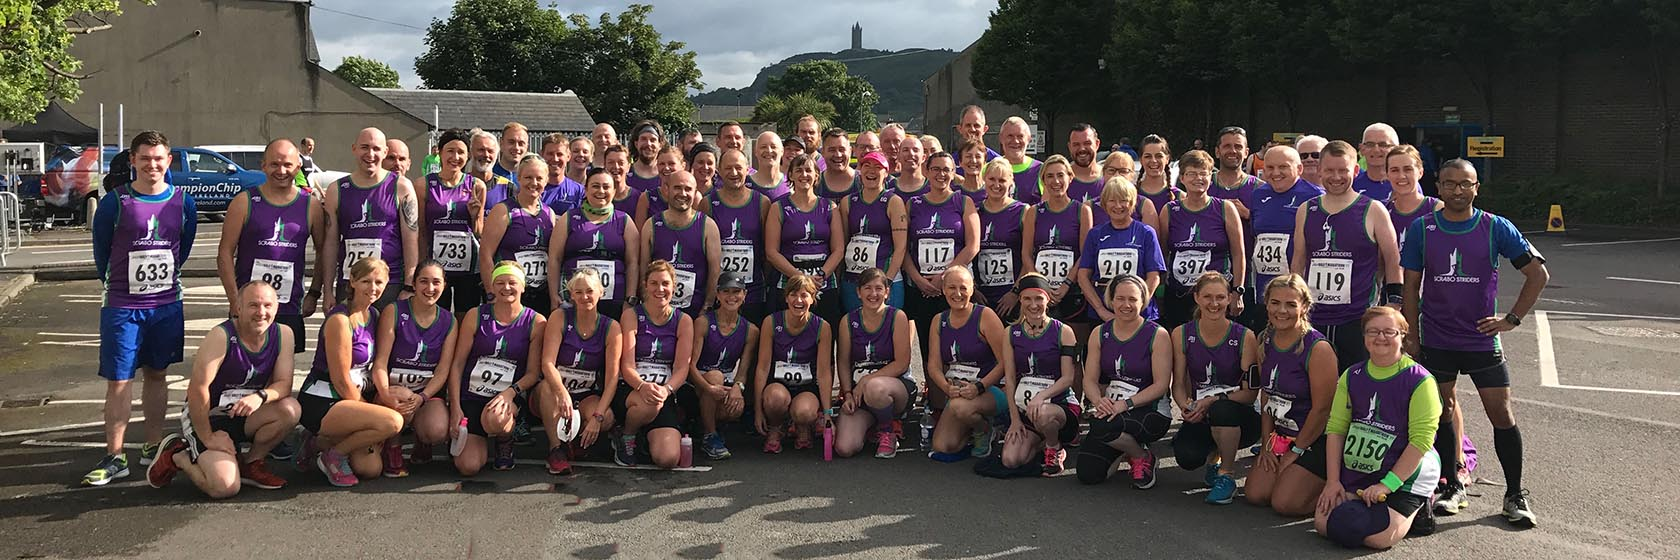 Striders at the Ards Half Marathon 2017